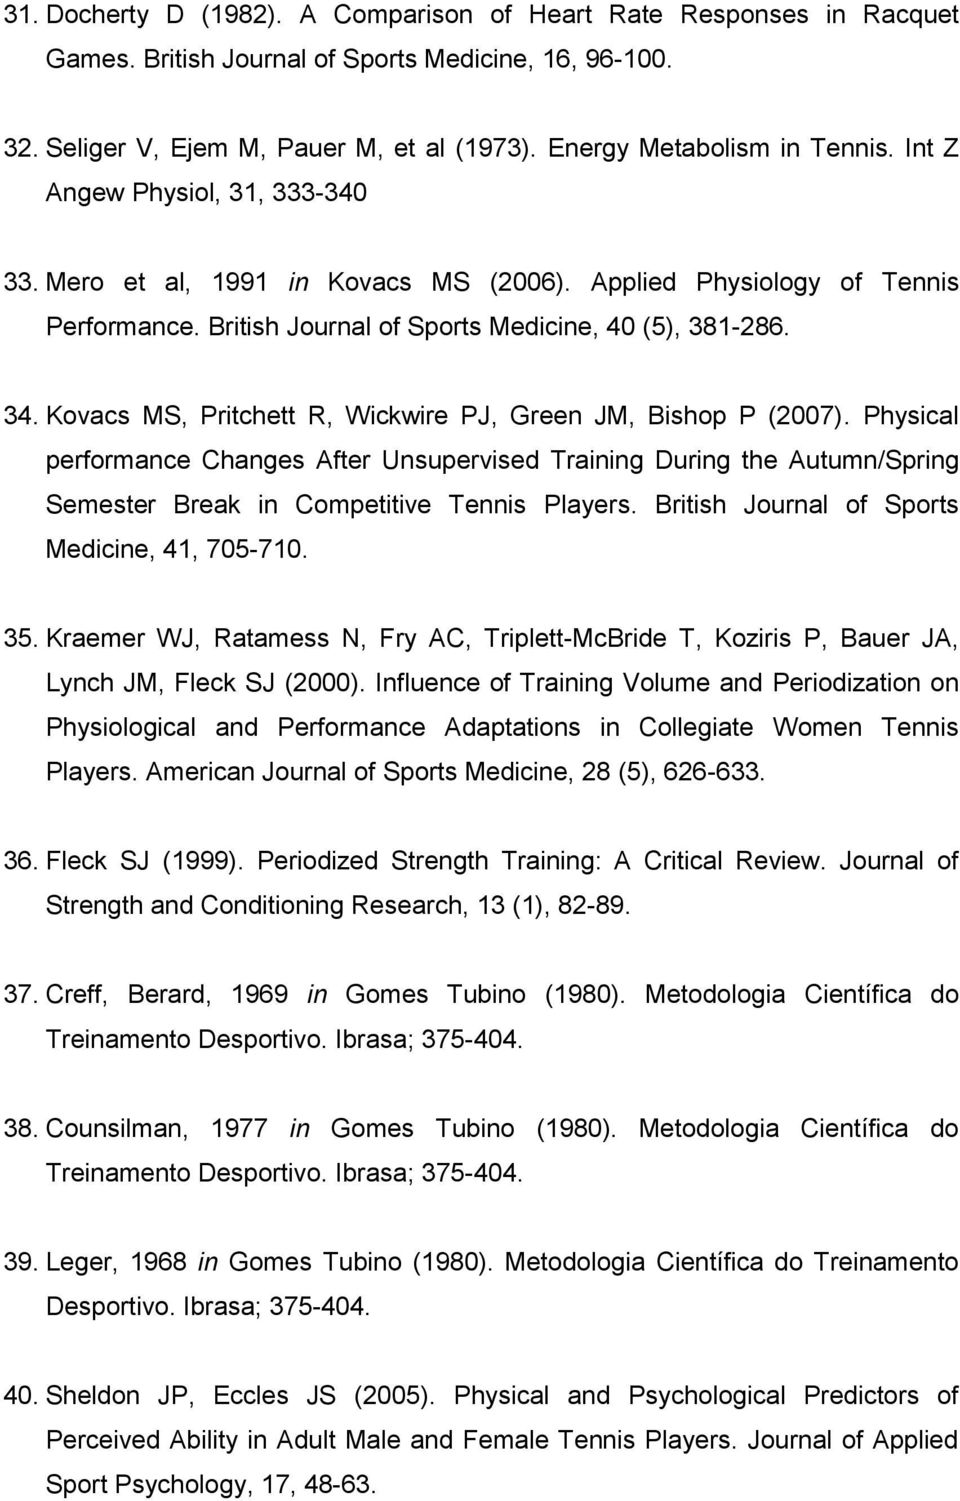 Kovacs MS, Pritchett R, Wickwire PJ, Green JM, Bishop P (2007). Physical performance Changes After Unsupervised Training During the Autumn/Spring Semester Break in Competitive Tennis Players.